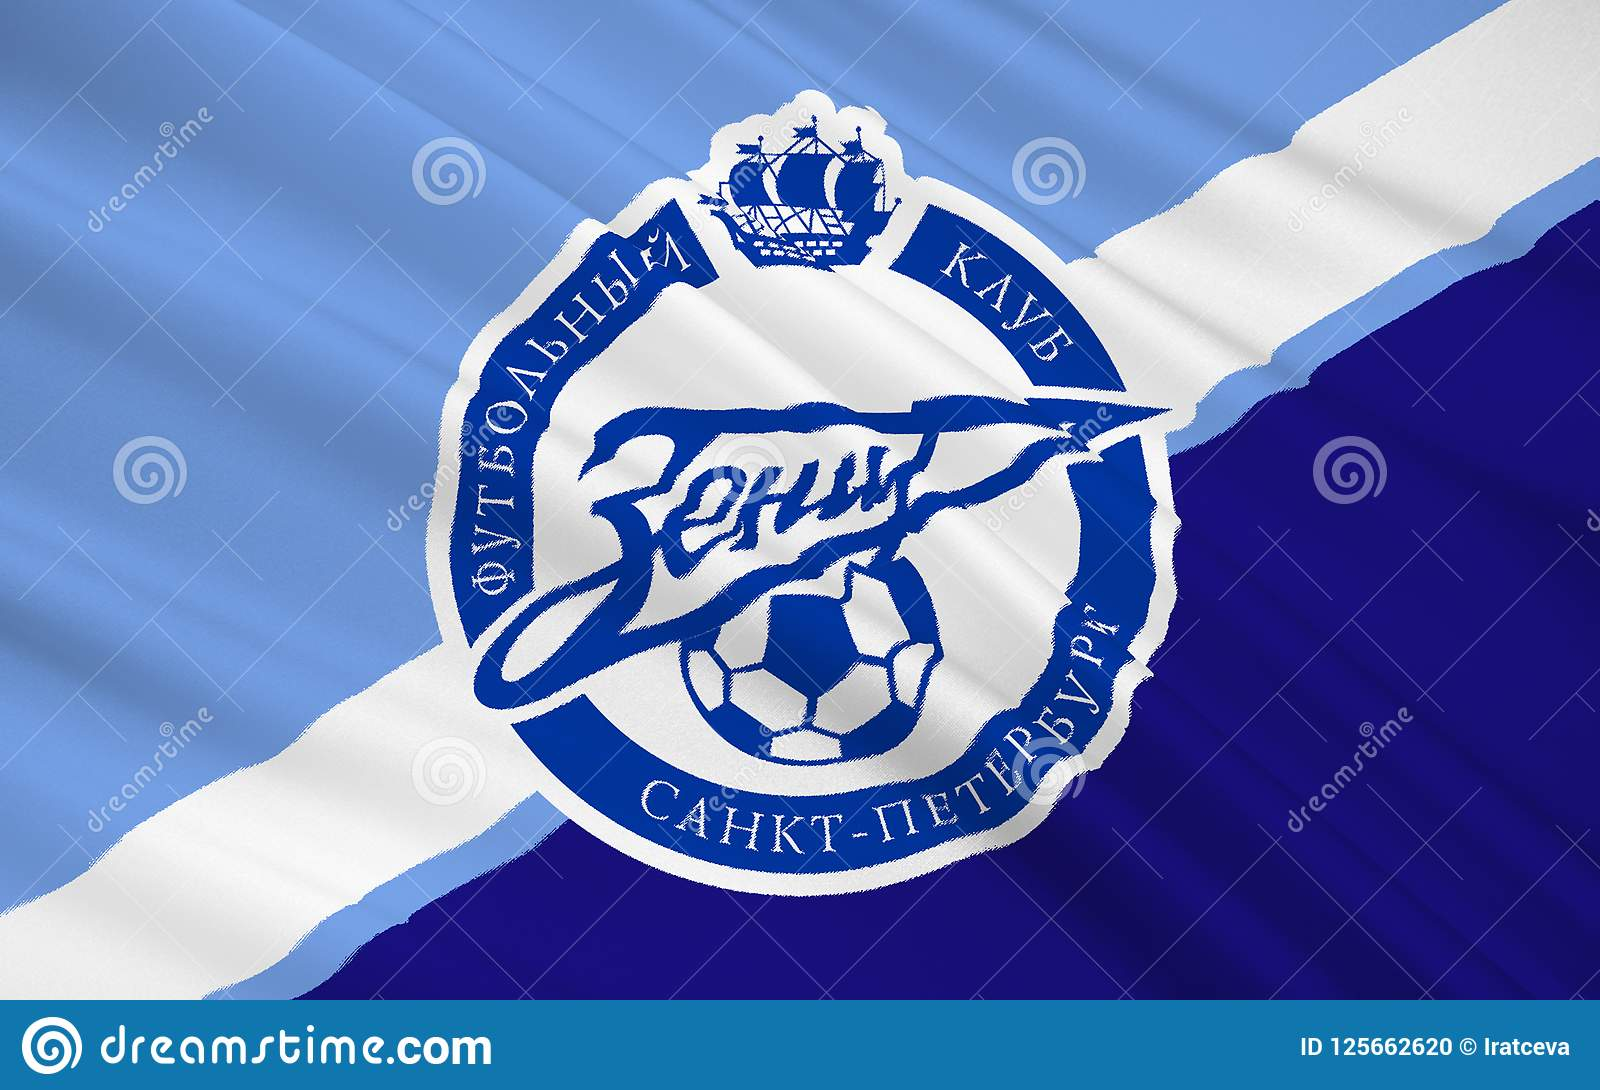 Flag Football Club Zenit Russia Editorial Image Illustration Of Nation Gunners 125662620